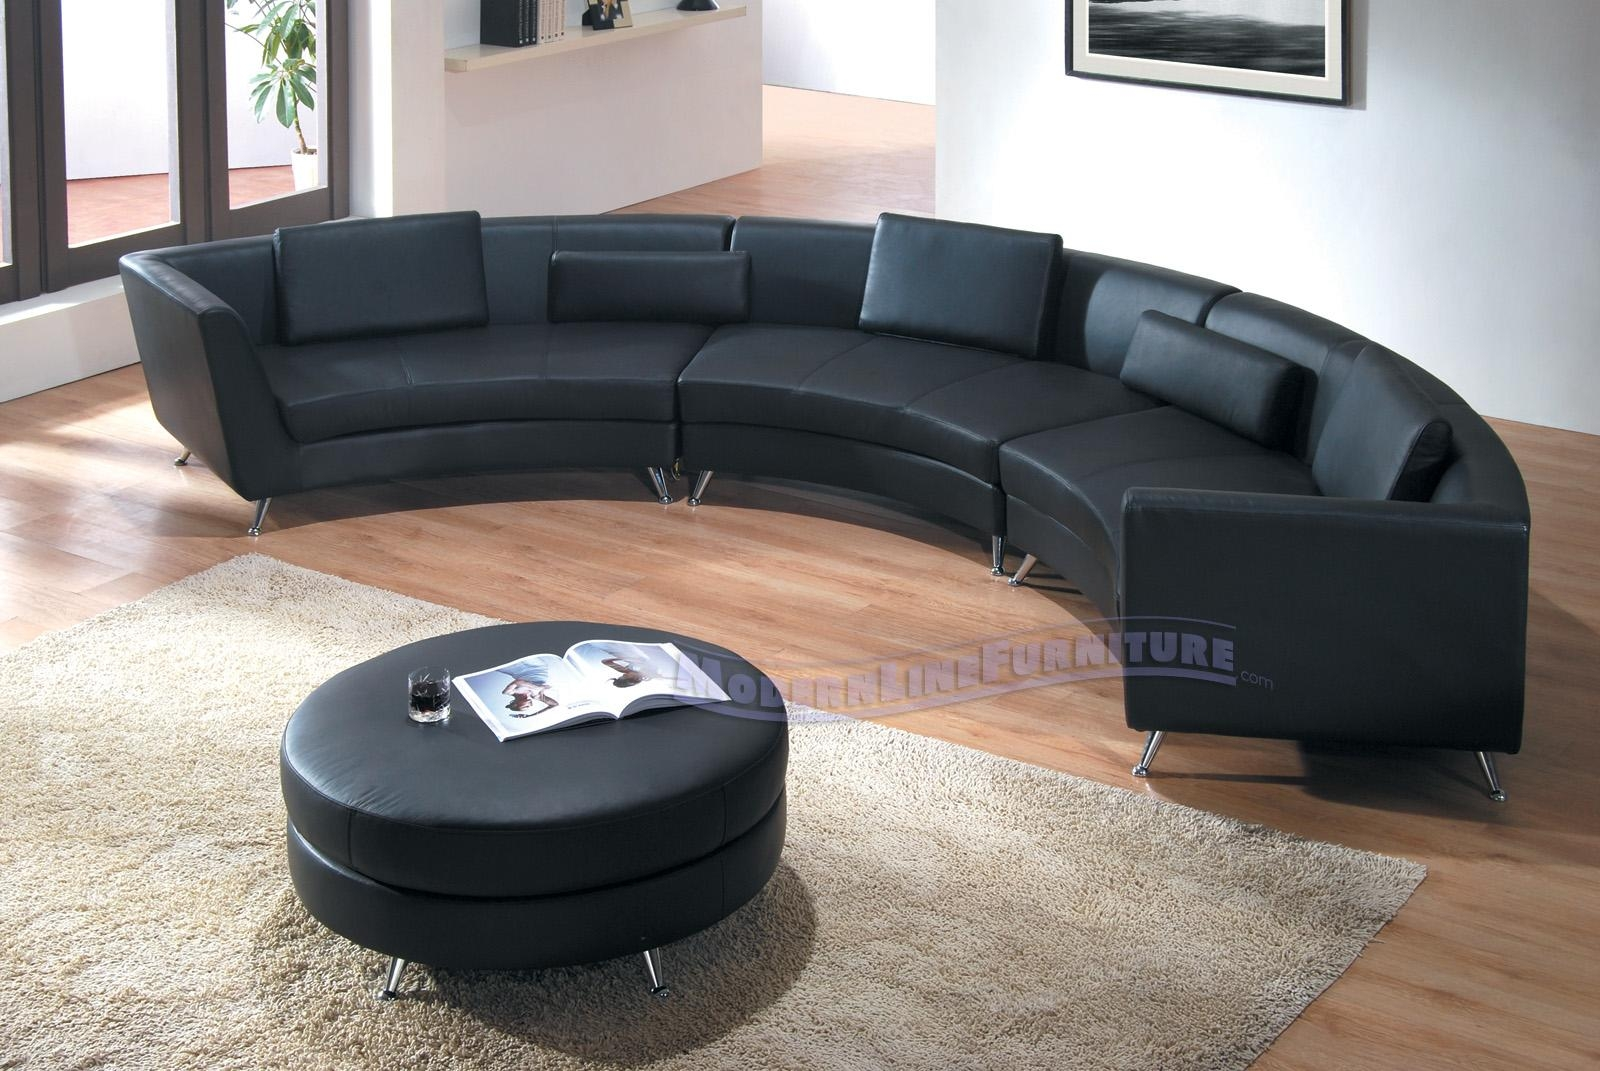 Modern Line Furniture – Commercial Furniture – Custom Made Regarding Leather Curved Sectional (Image 15 of 20)